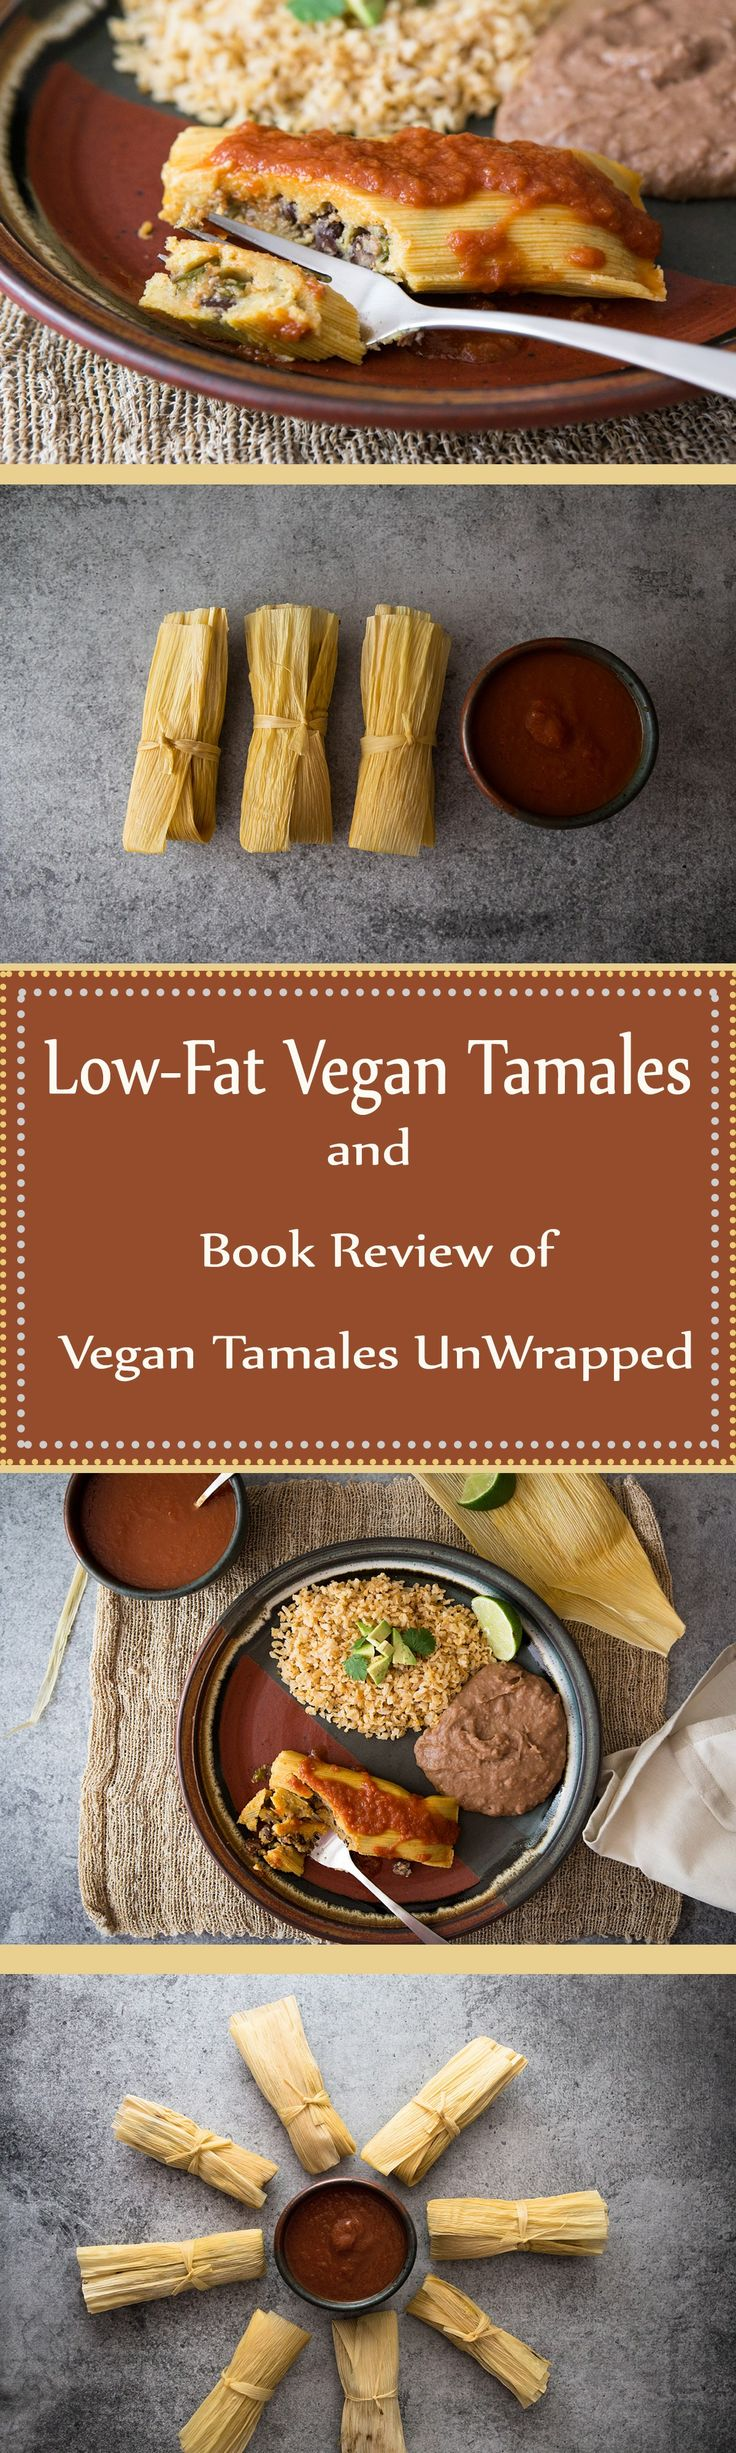 Low fat Vegan Tamales are super yummy and easier to make than you'd think!